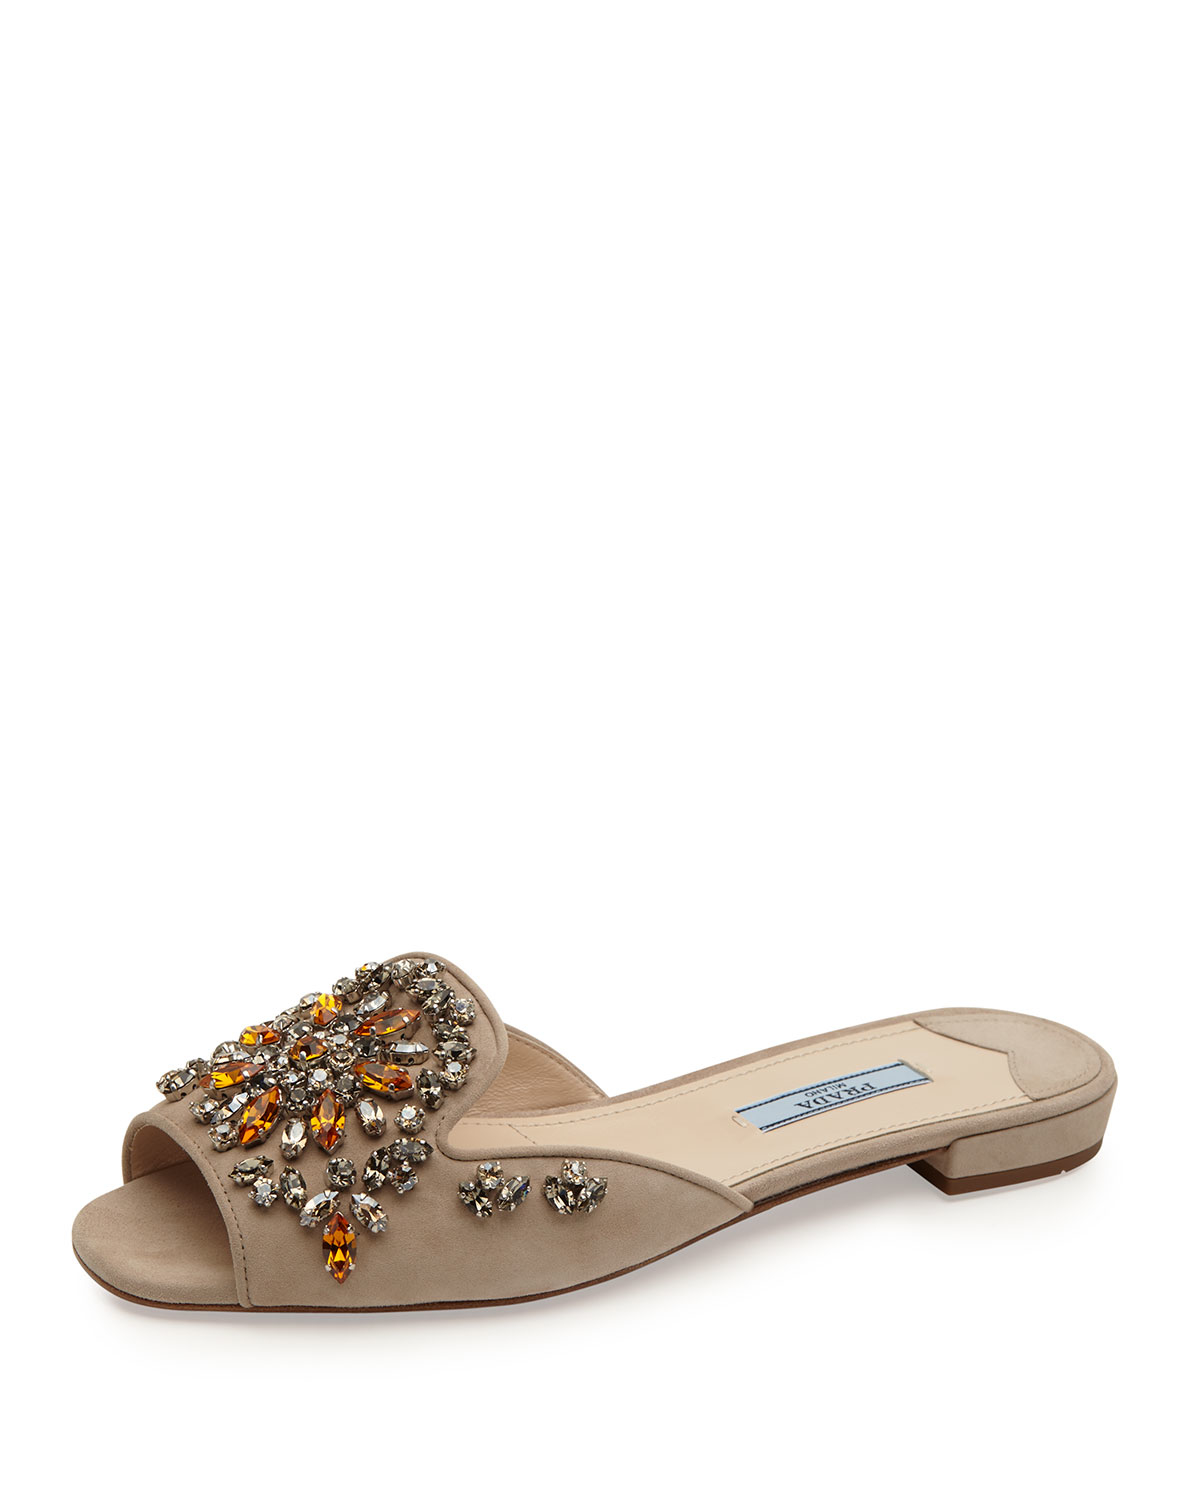 crystal studded flat slides - Blue Prada